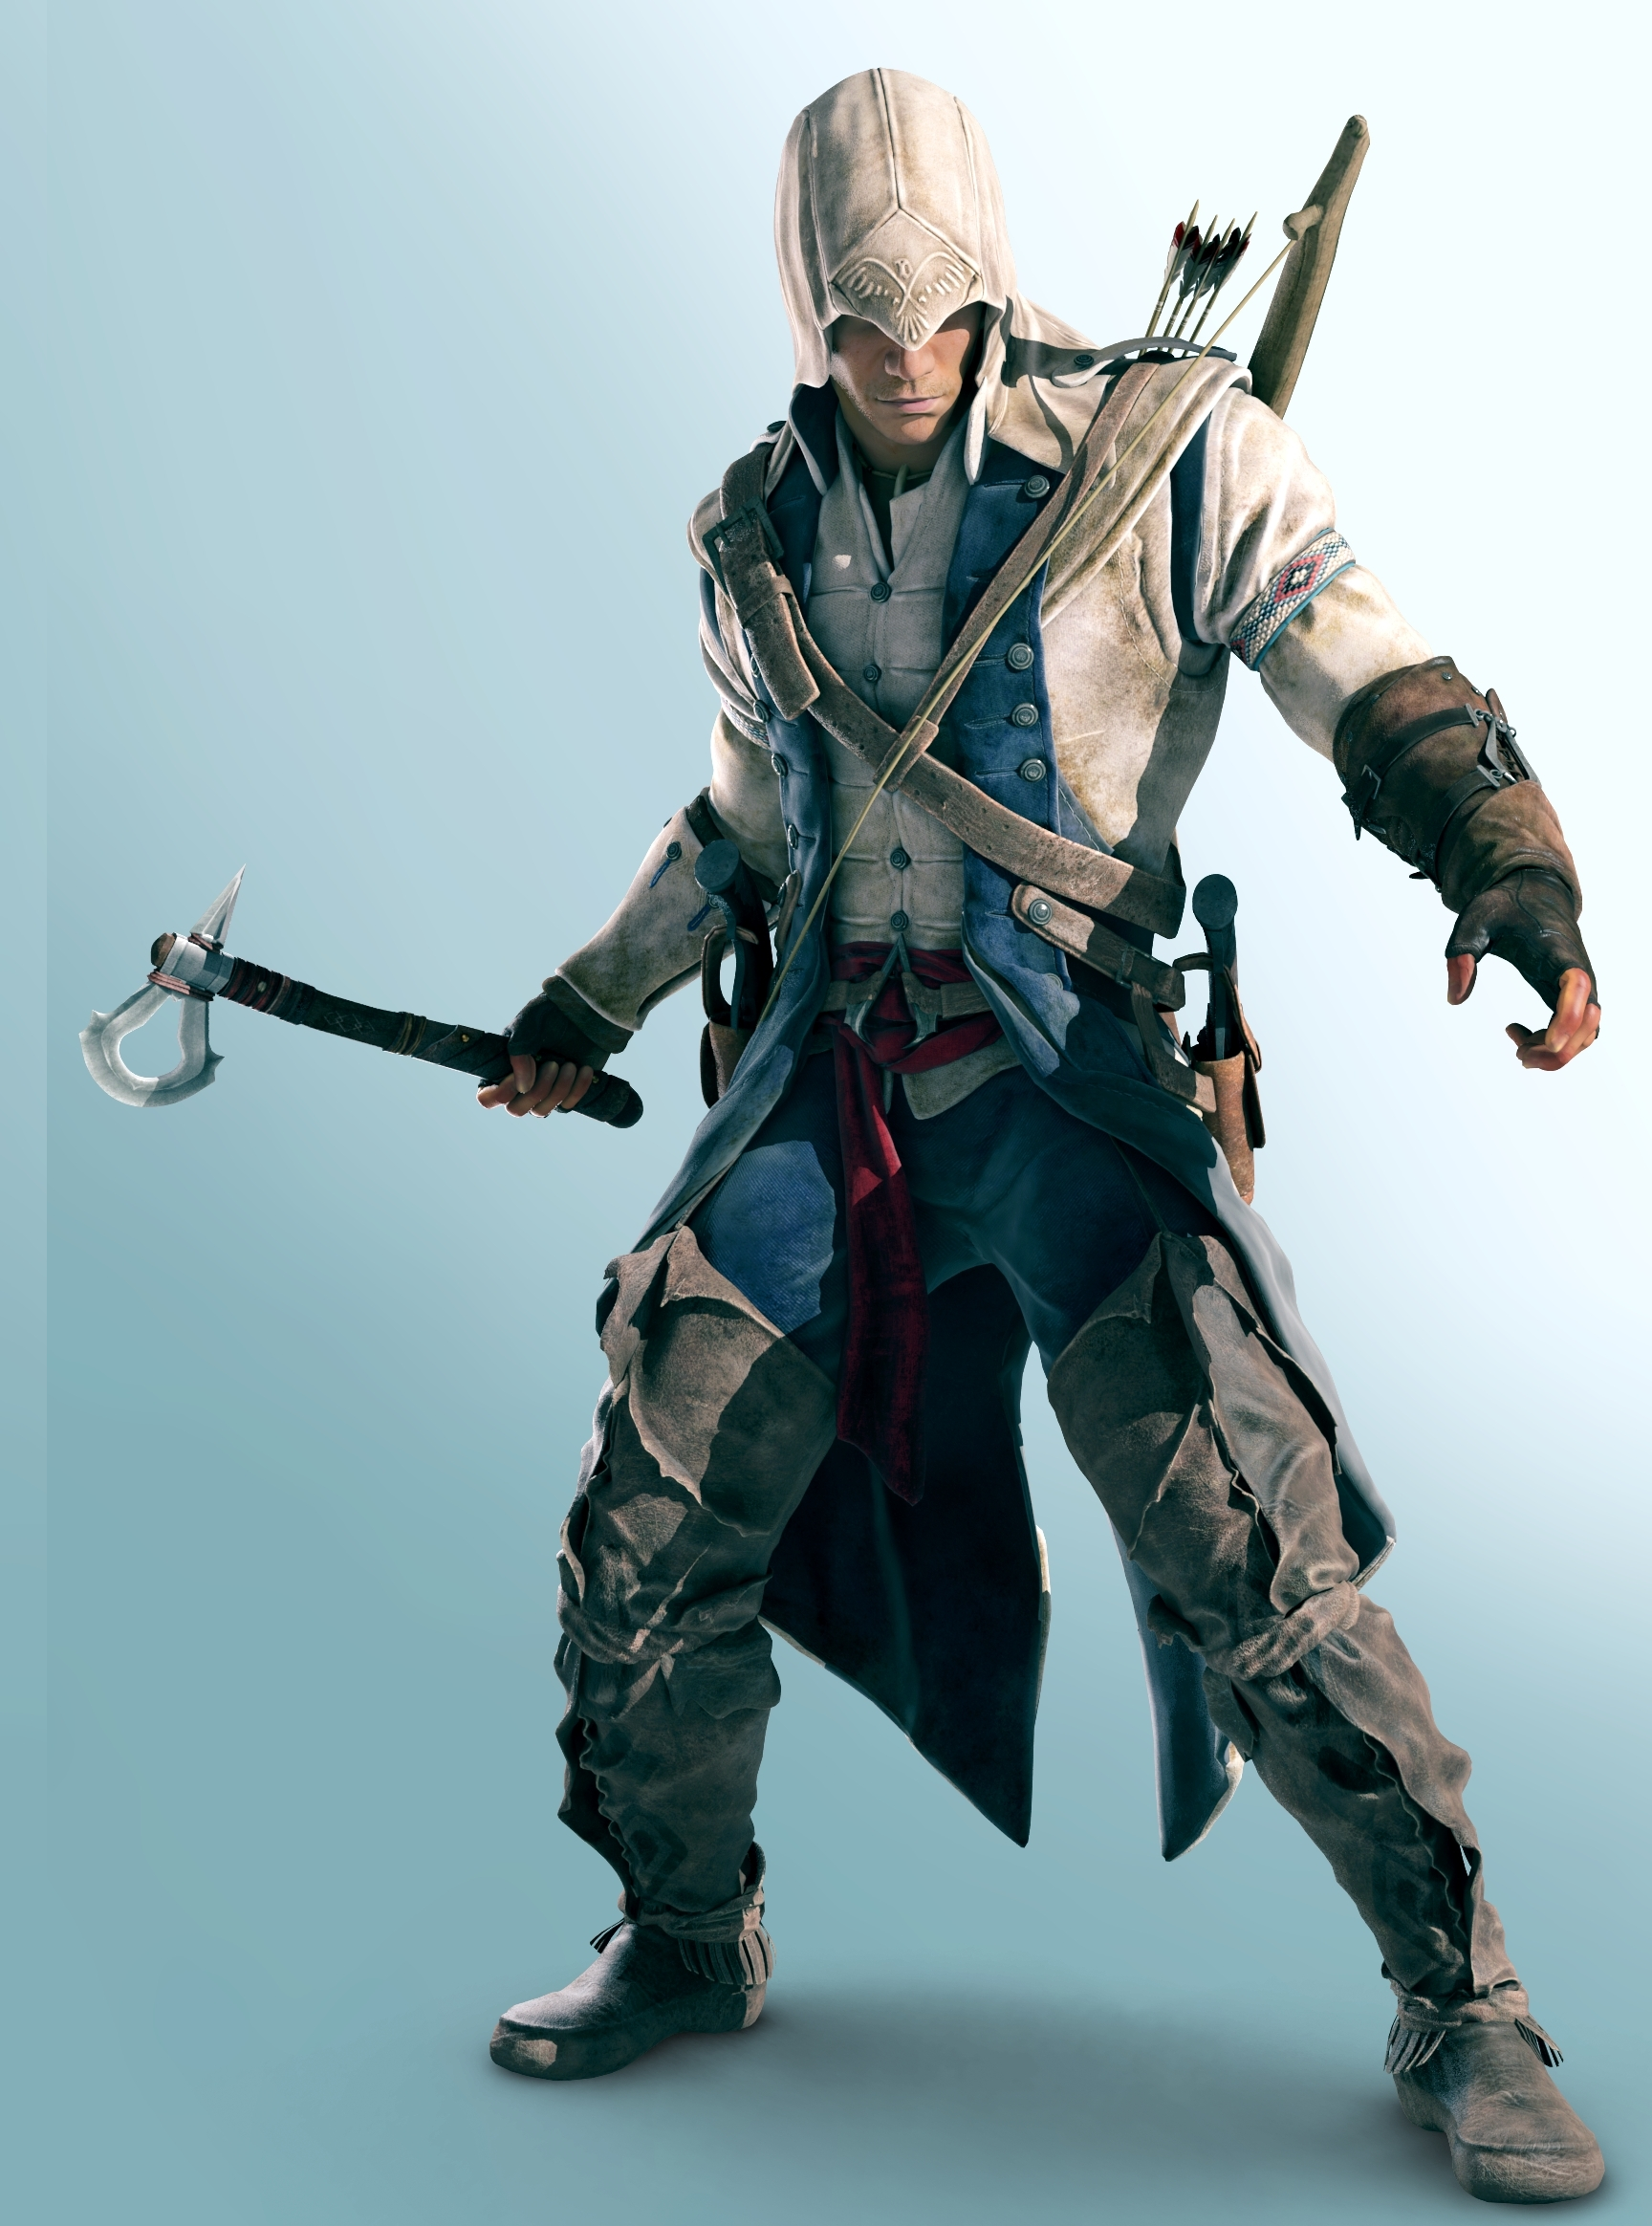 connor kenway assassins creed iii assassinscreediii